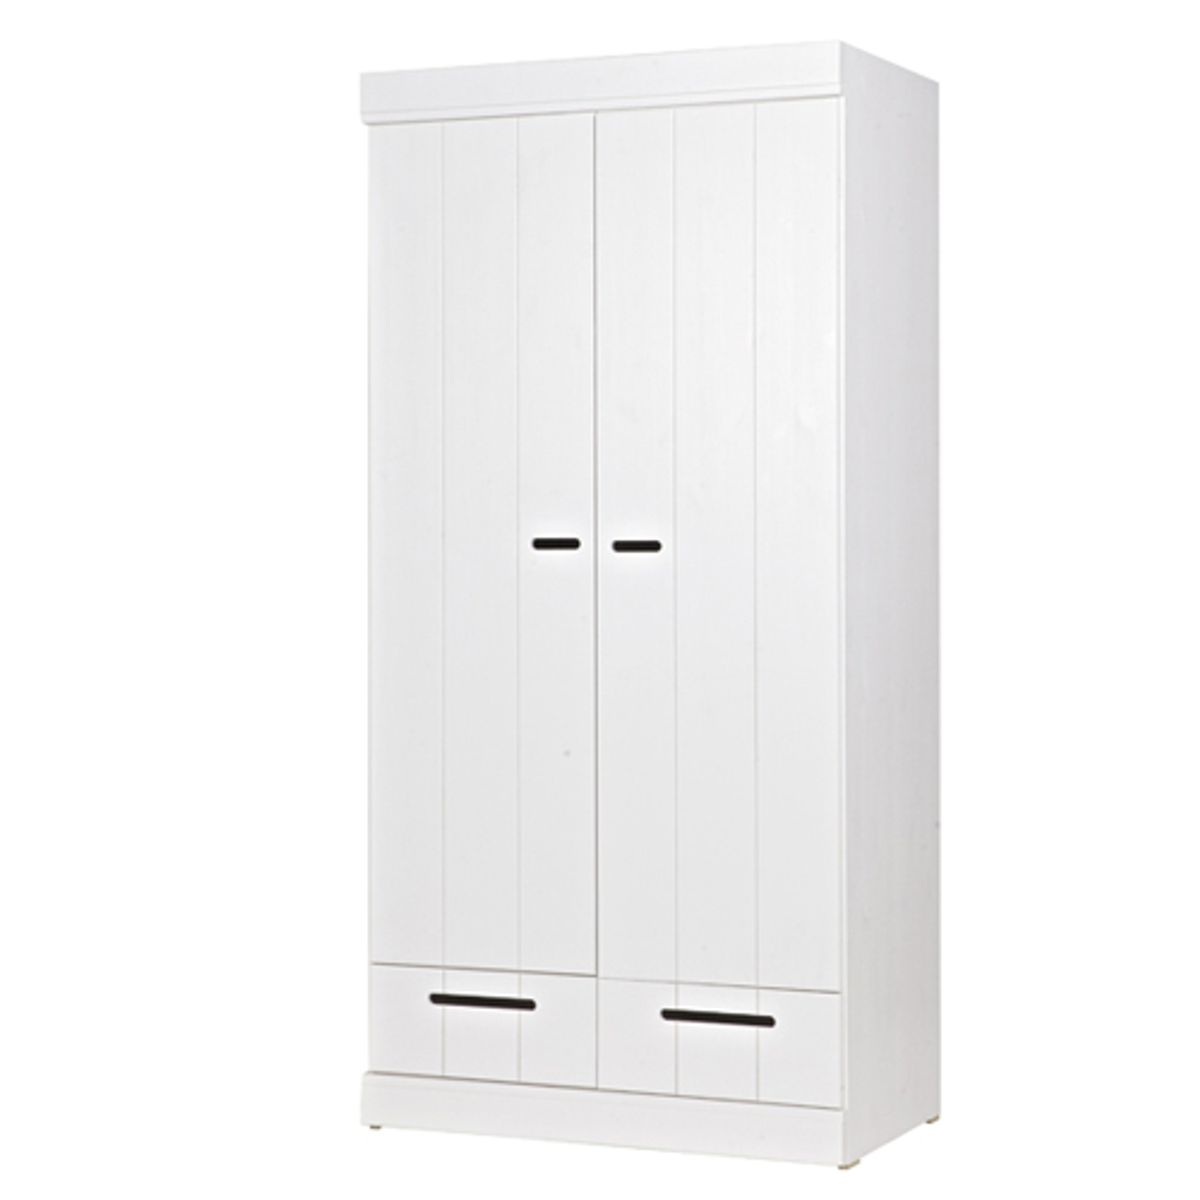 armoire penderie en pin blanc 2p avec tiroirs connect creuse decoclico. Black Bedroom Furniture Sets. Home Design Ideas